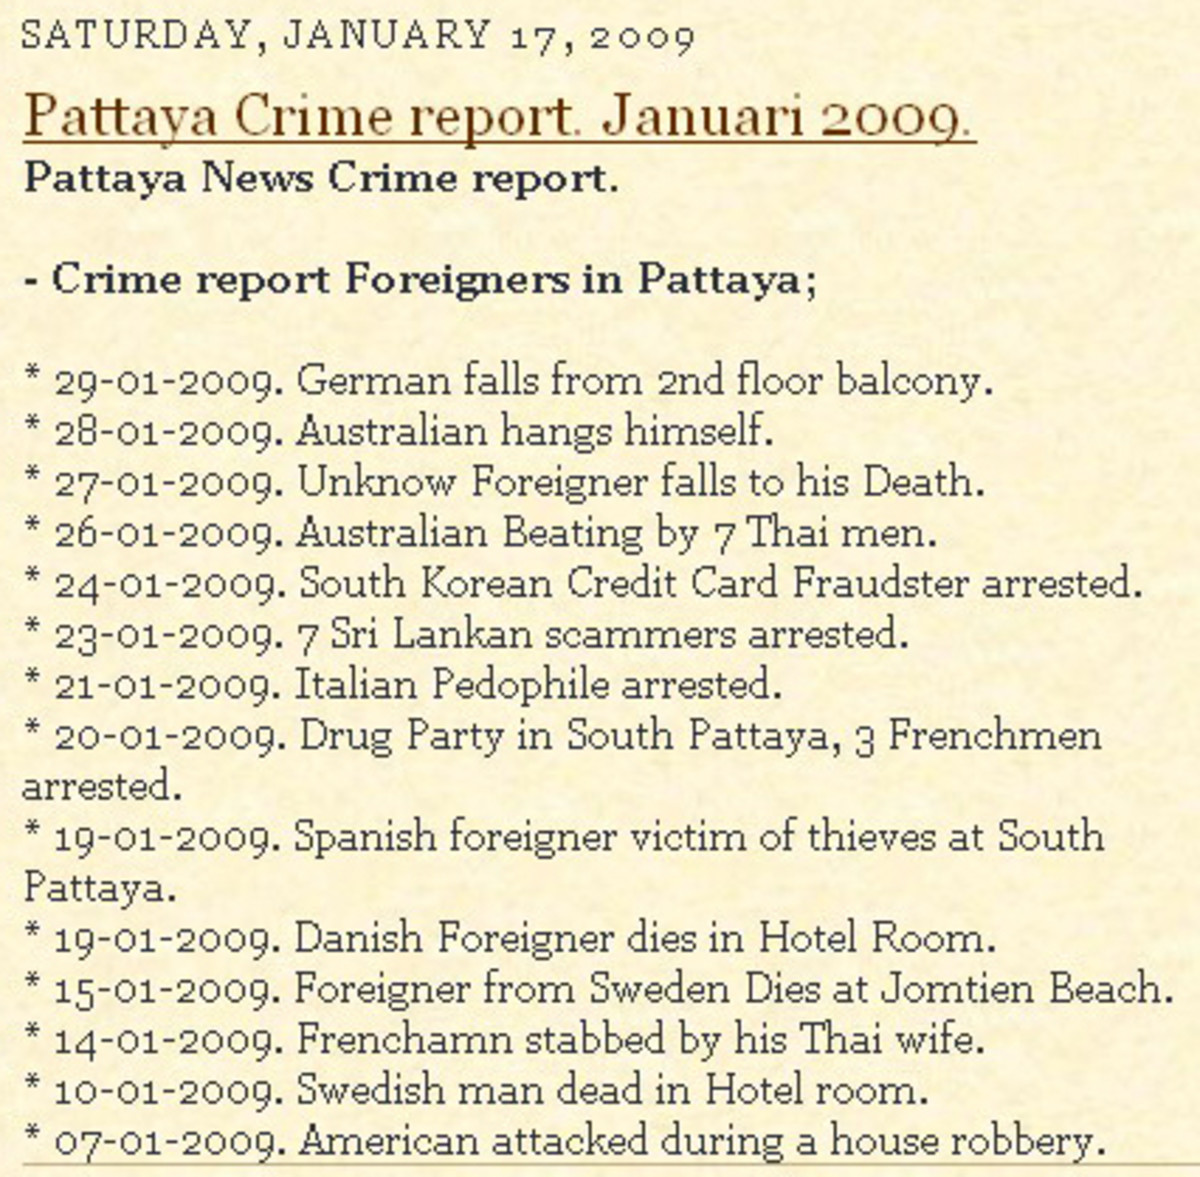 http://holidaypattaya.blogspot.com/2009/01/pattaya-news-1-15-januari-2009-crime.html Pattaya is notrious for crime.